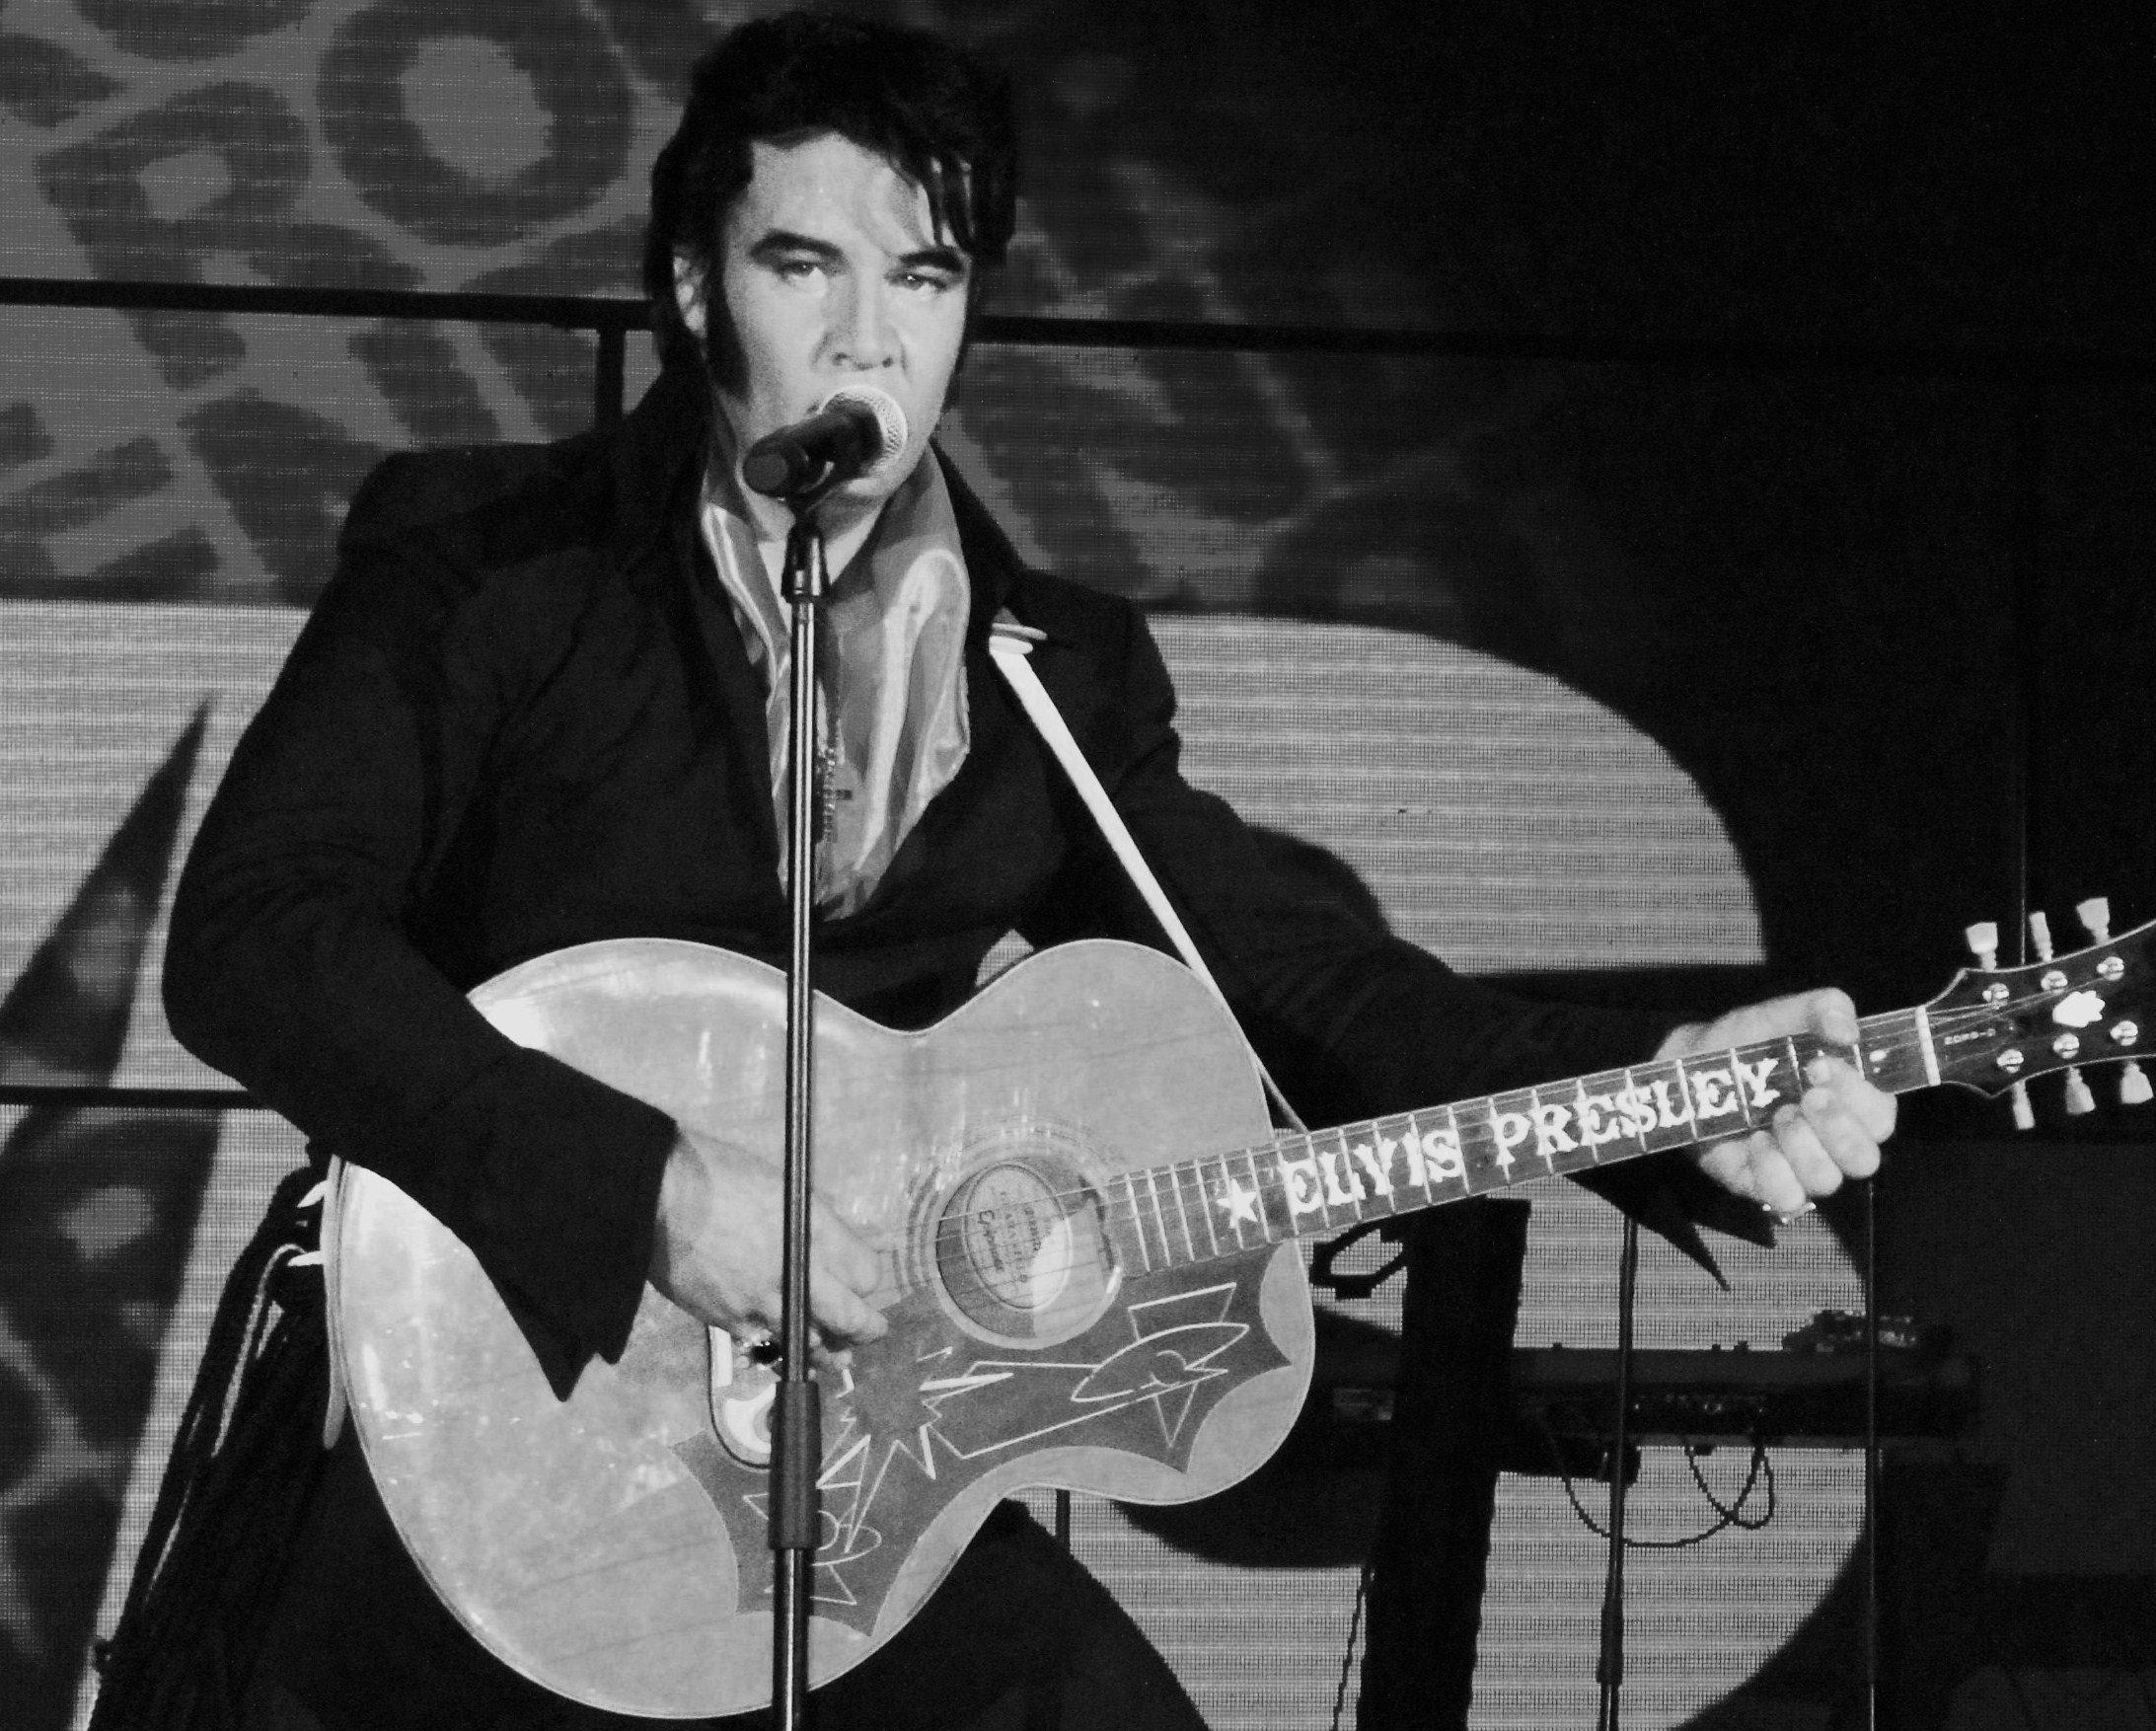 Kjell Elvis B&W 1969 Elvis in Stage